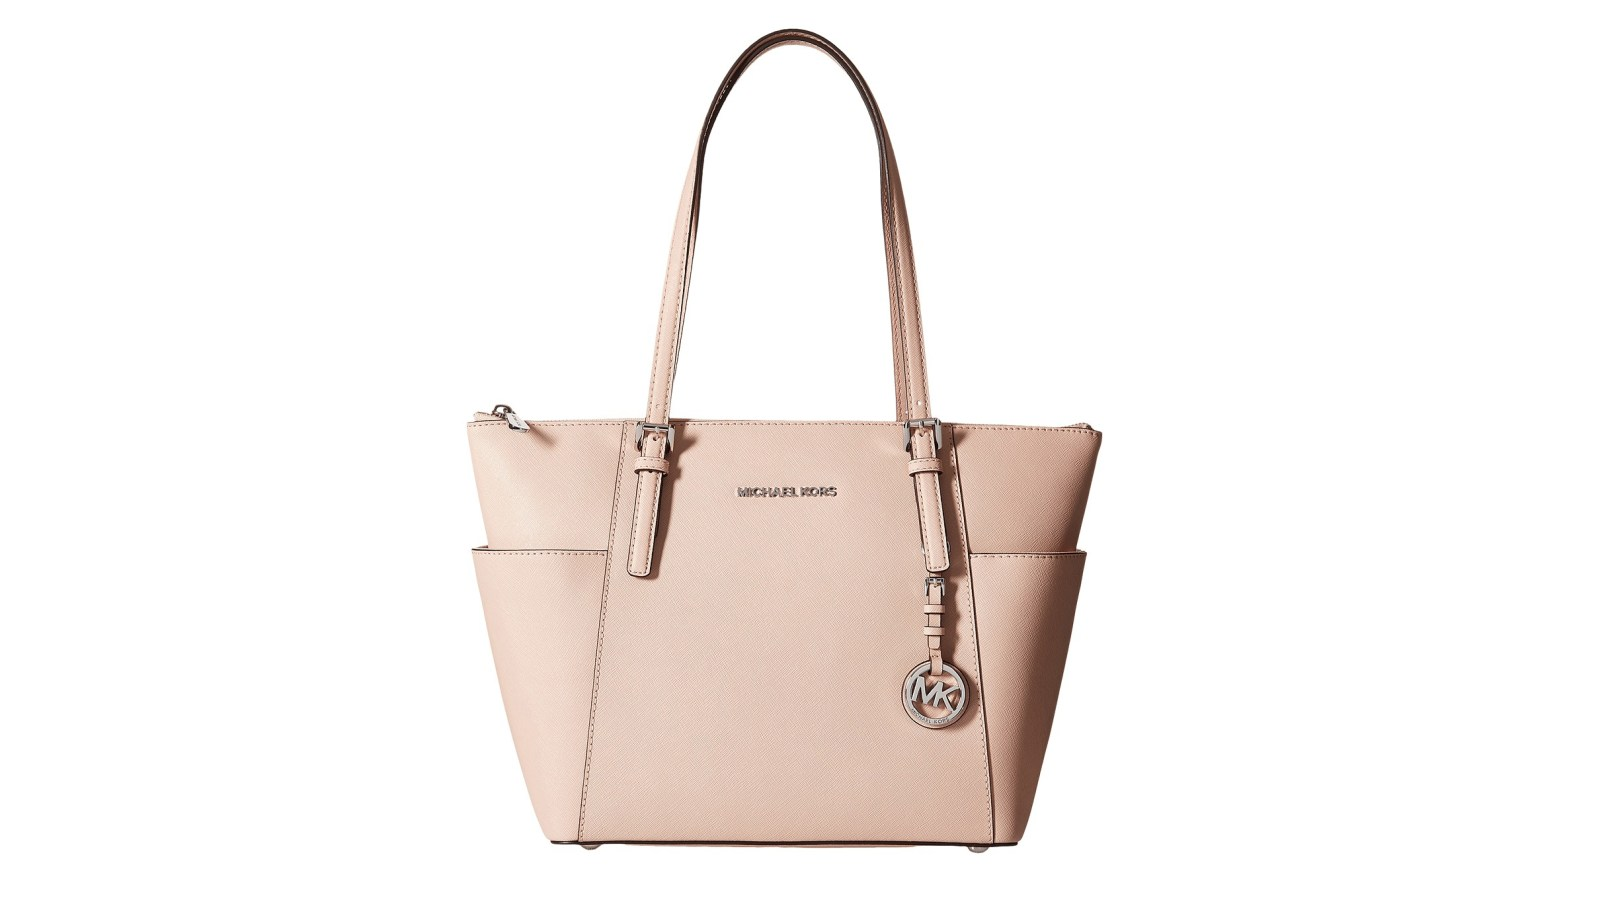 8b26ca6c4ecf Shoppers Are Obsessed With this Michael Kors Bag and It s Obvious Why